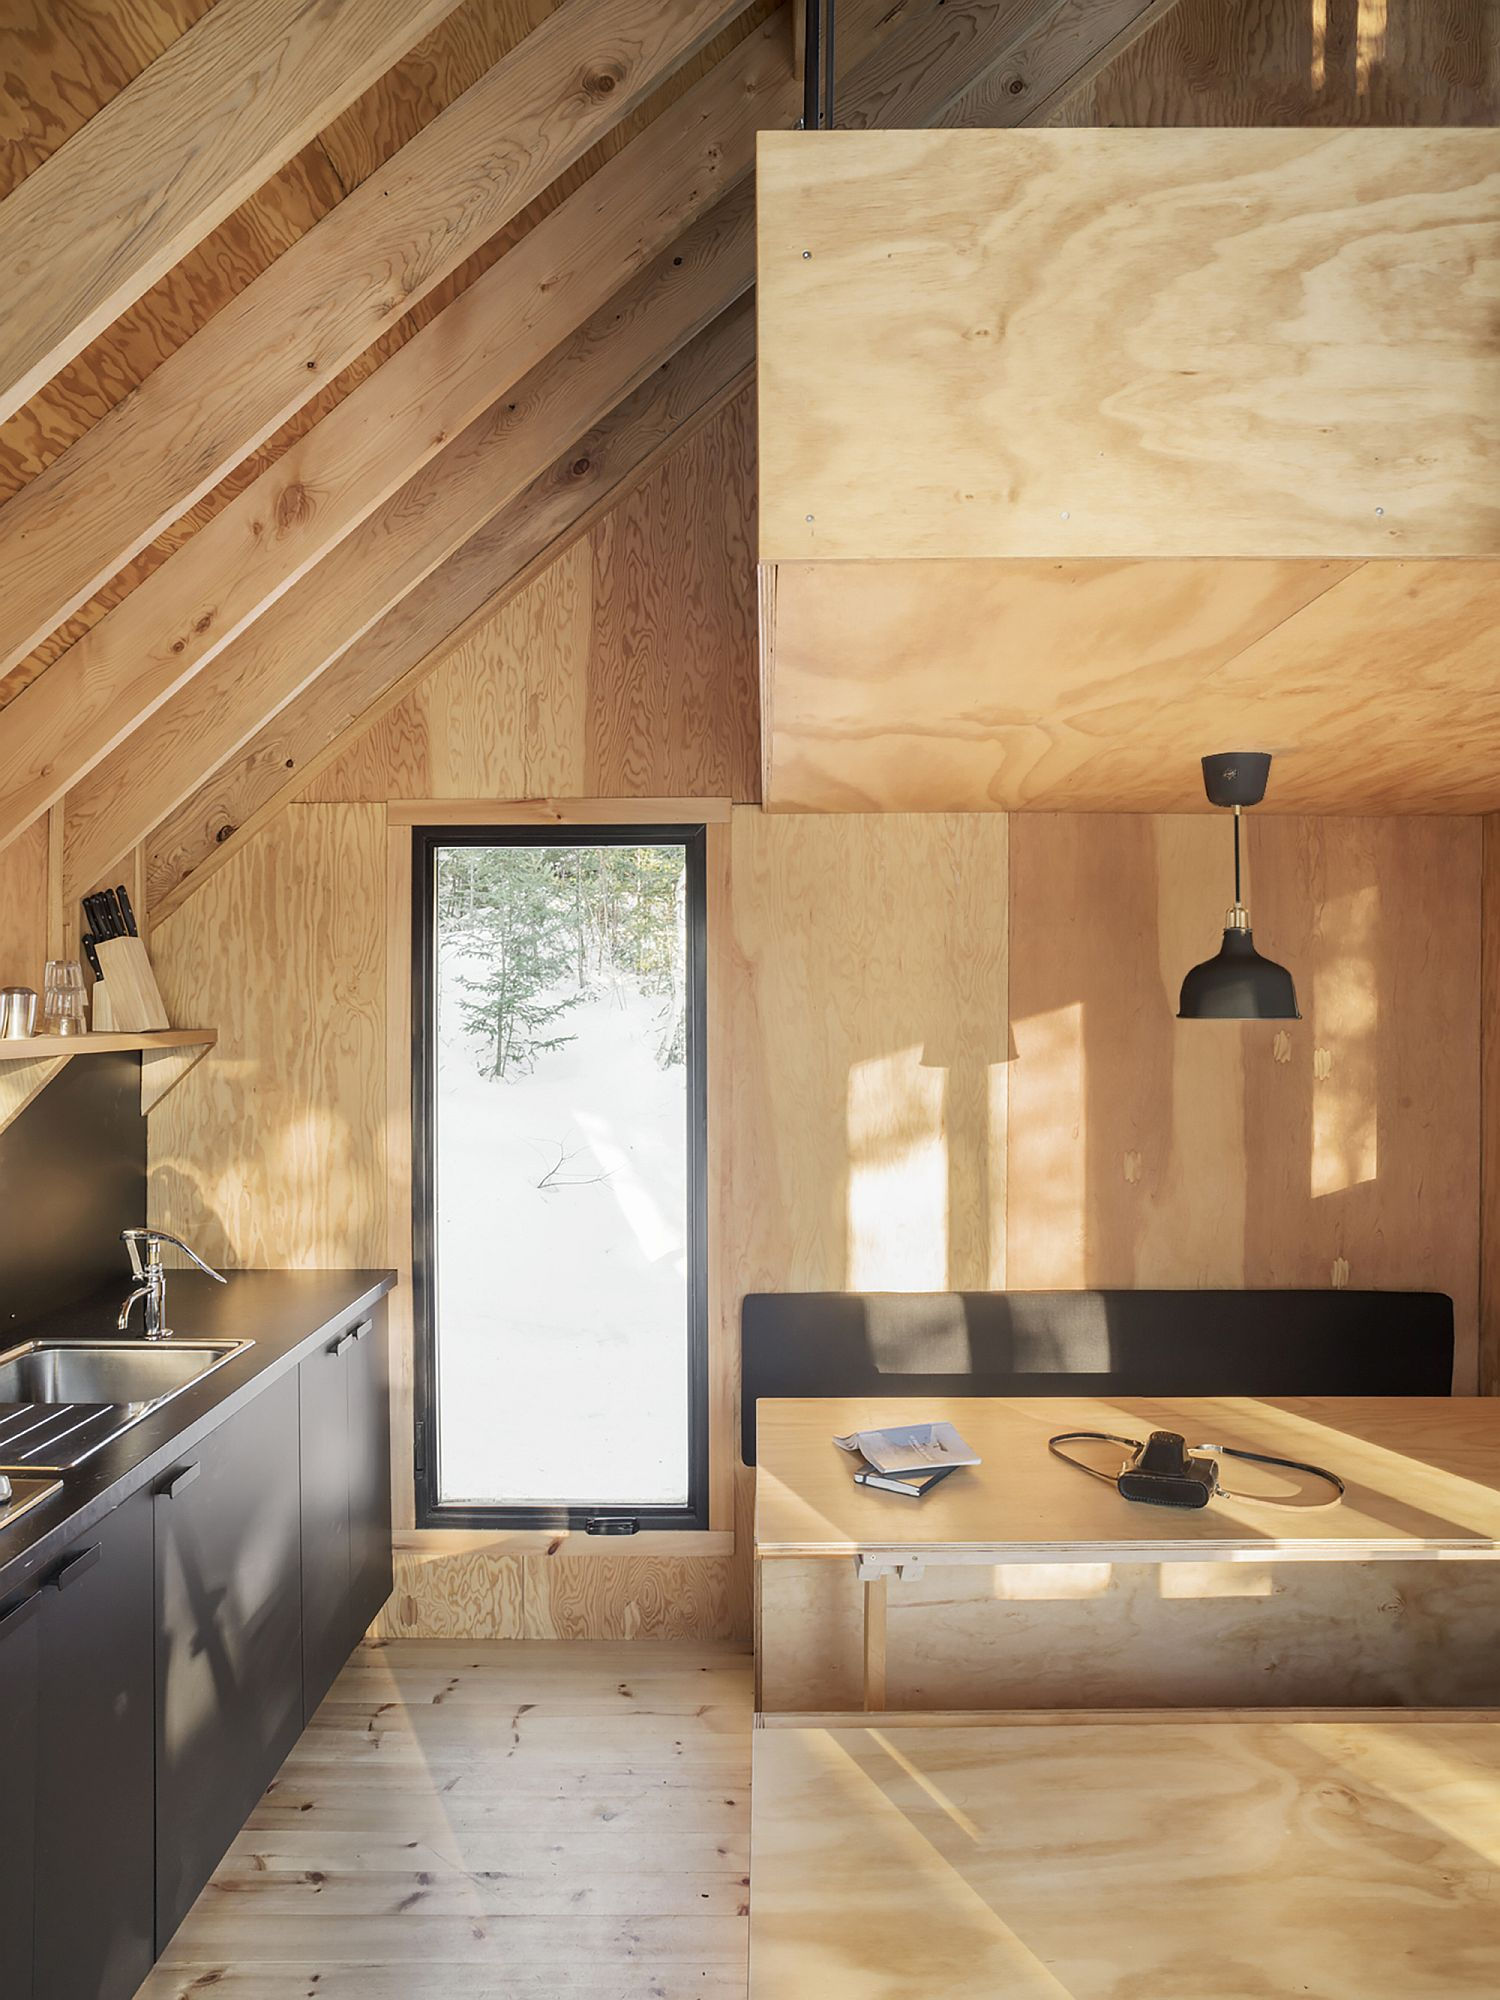 Woodsy cabin interior is both modern and timeless